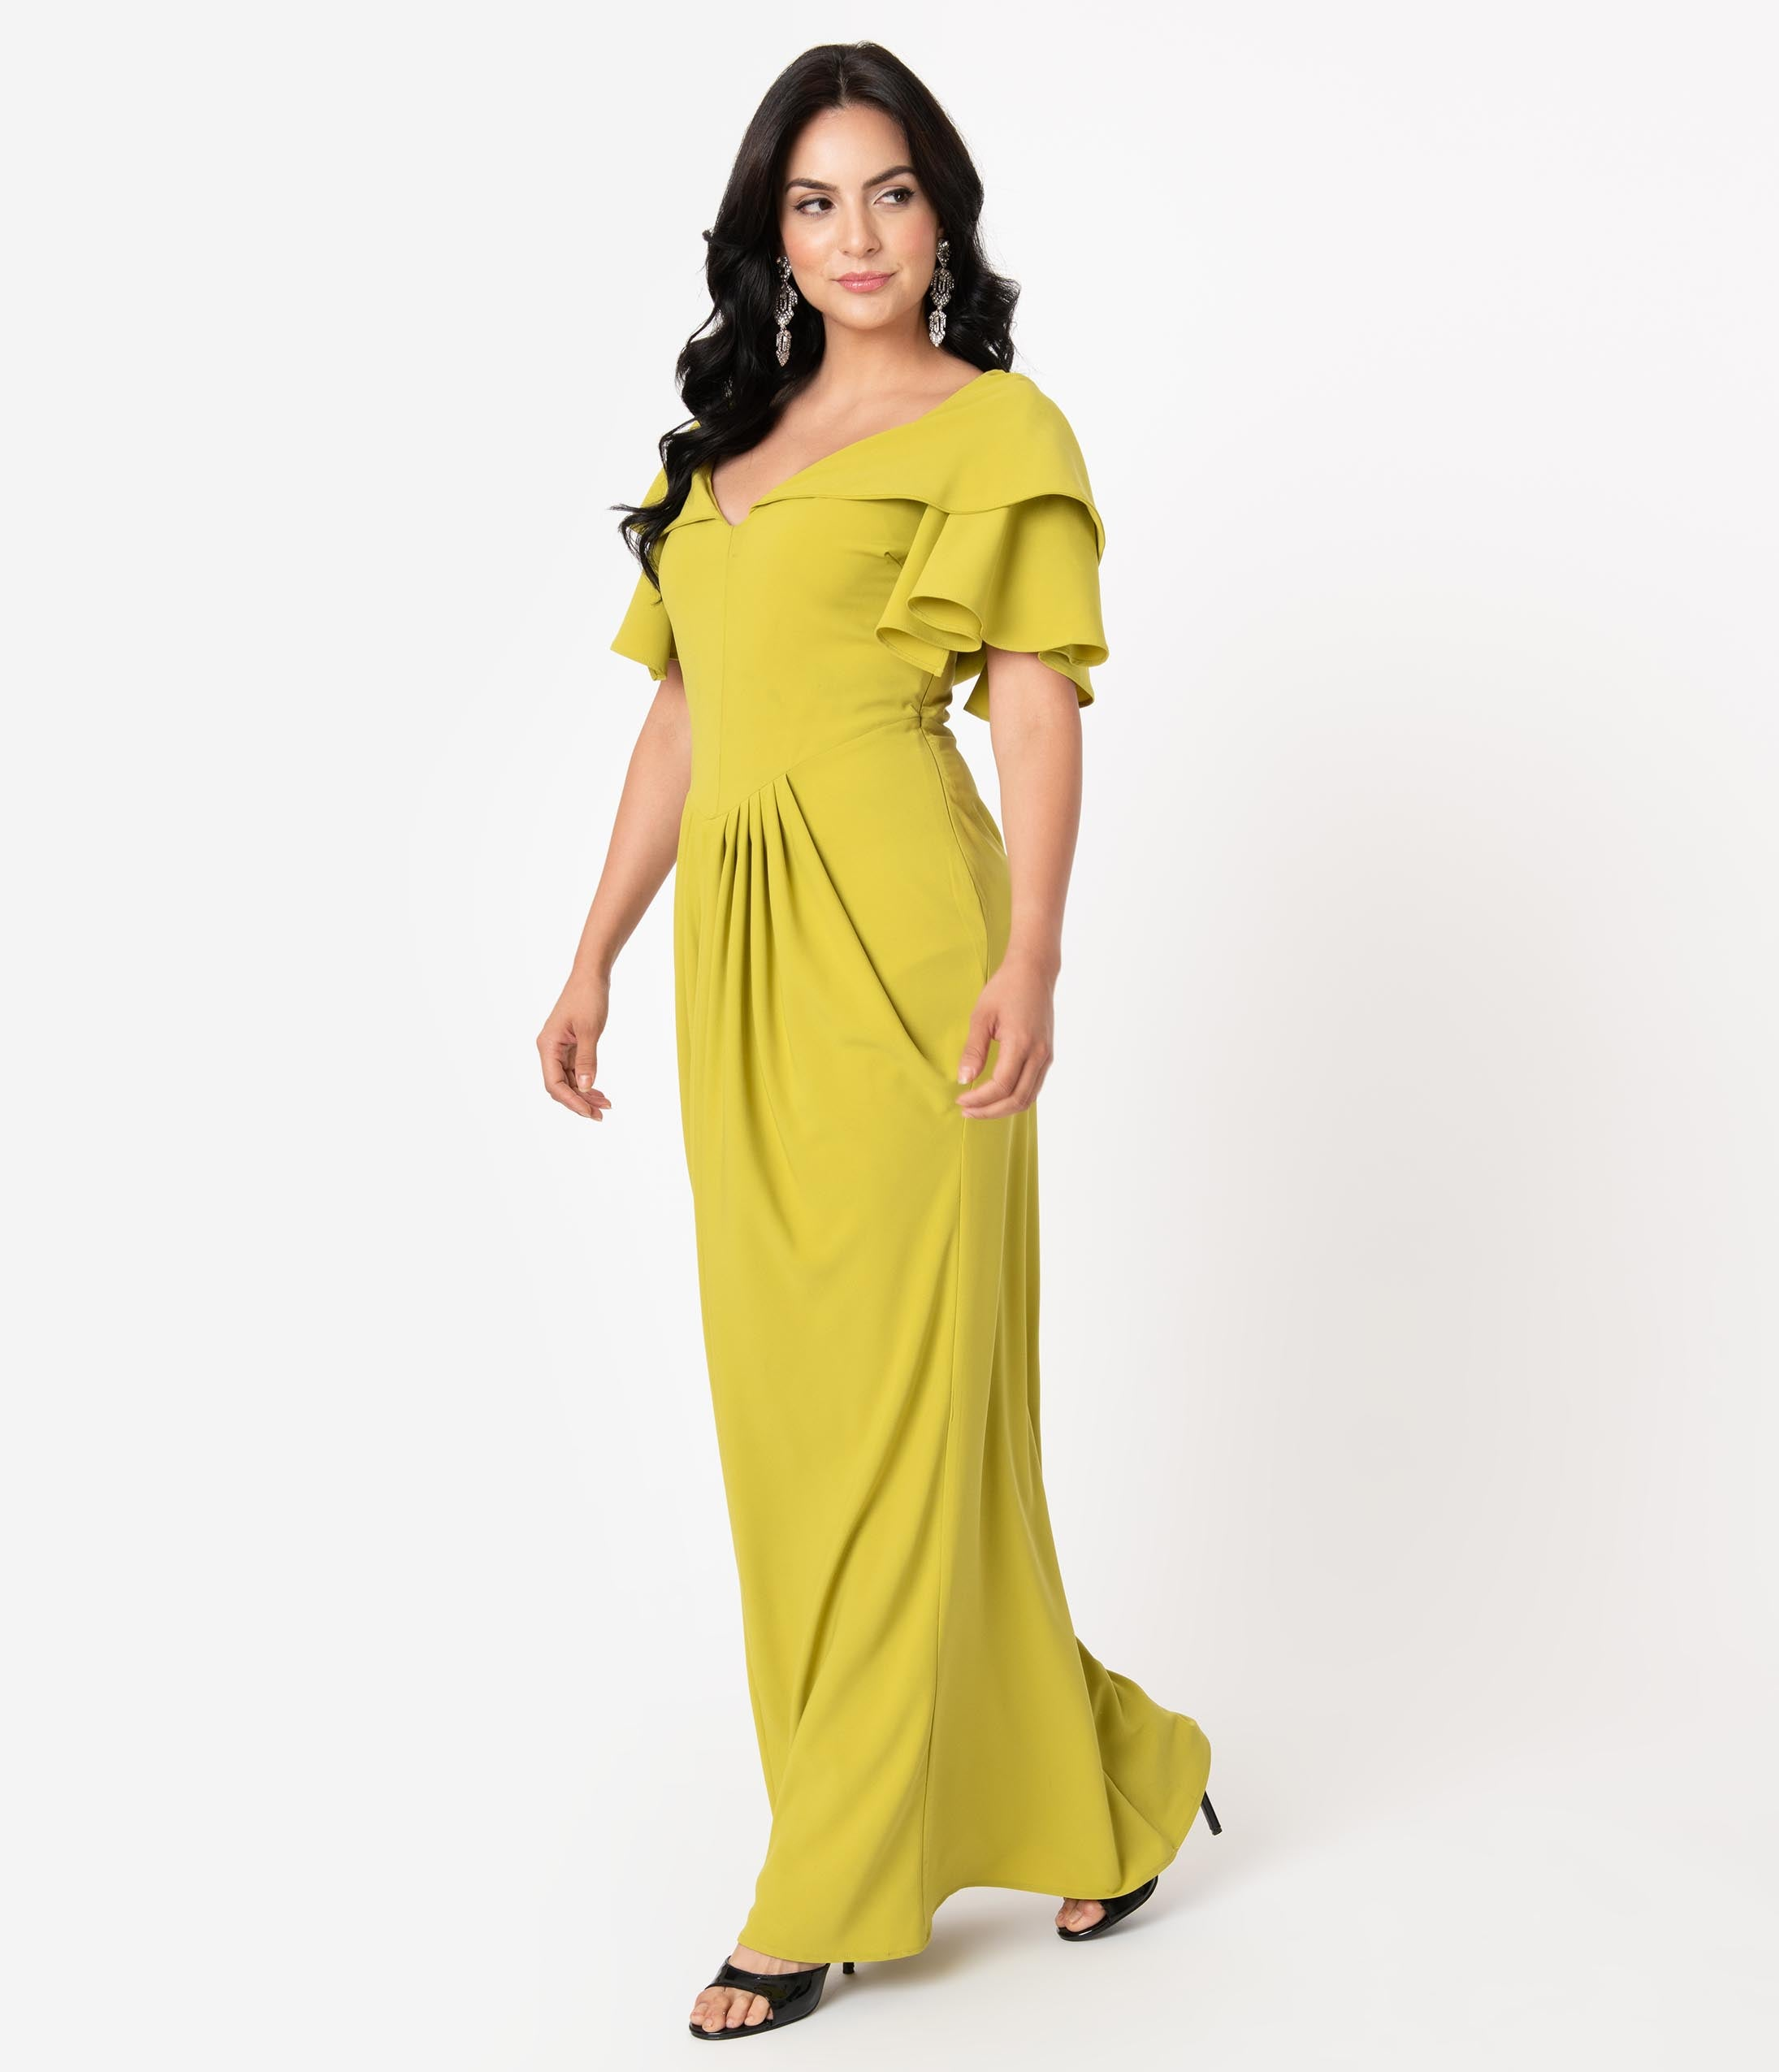 1940s Plus Size Dresses | Swing Dress, Tea Dress Micheline Pitt For Unique Vintage 1940S Style Chartreuse Zhora Hooded Gown $148.00 AT vintagedancer.com